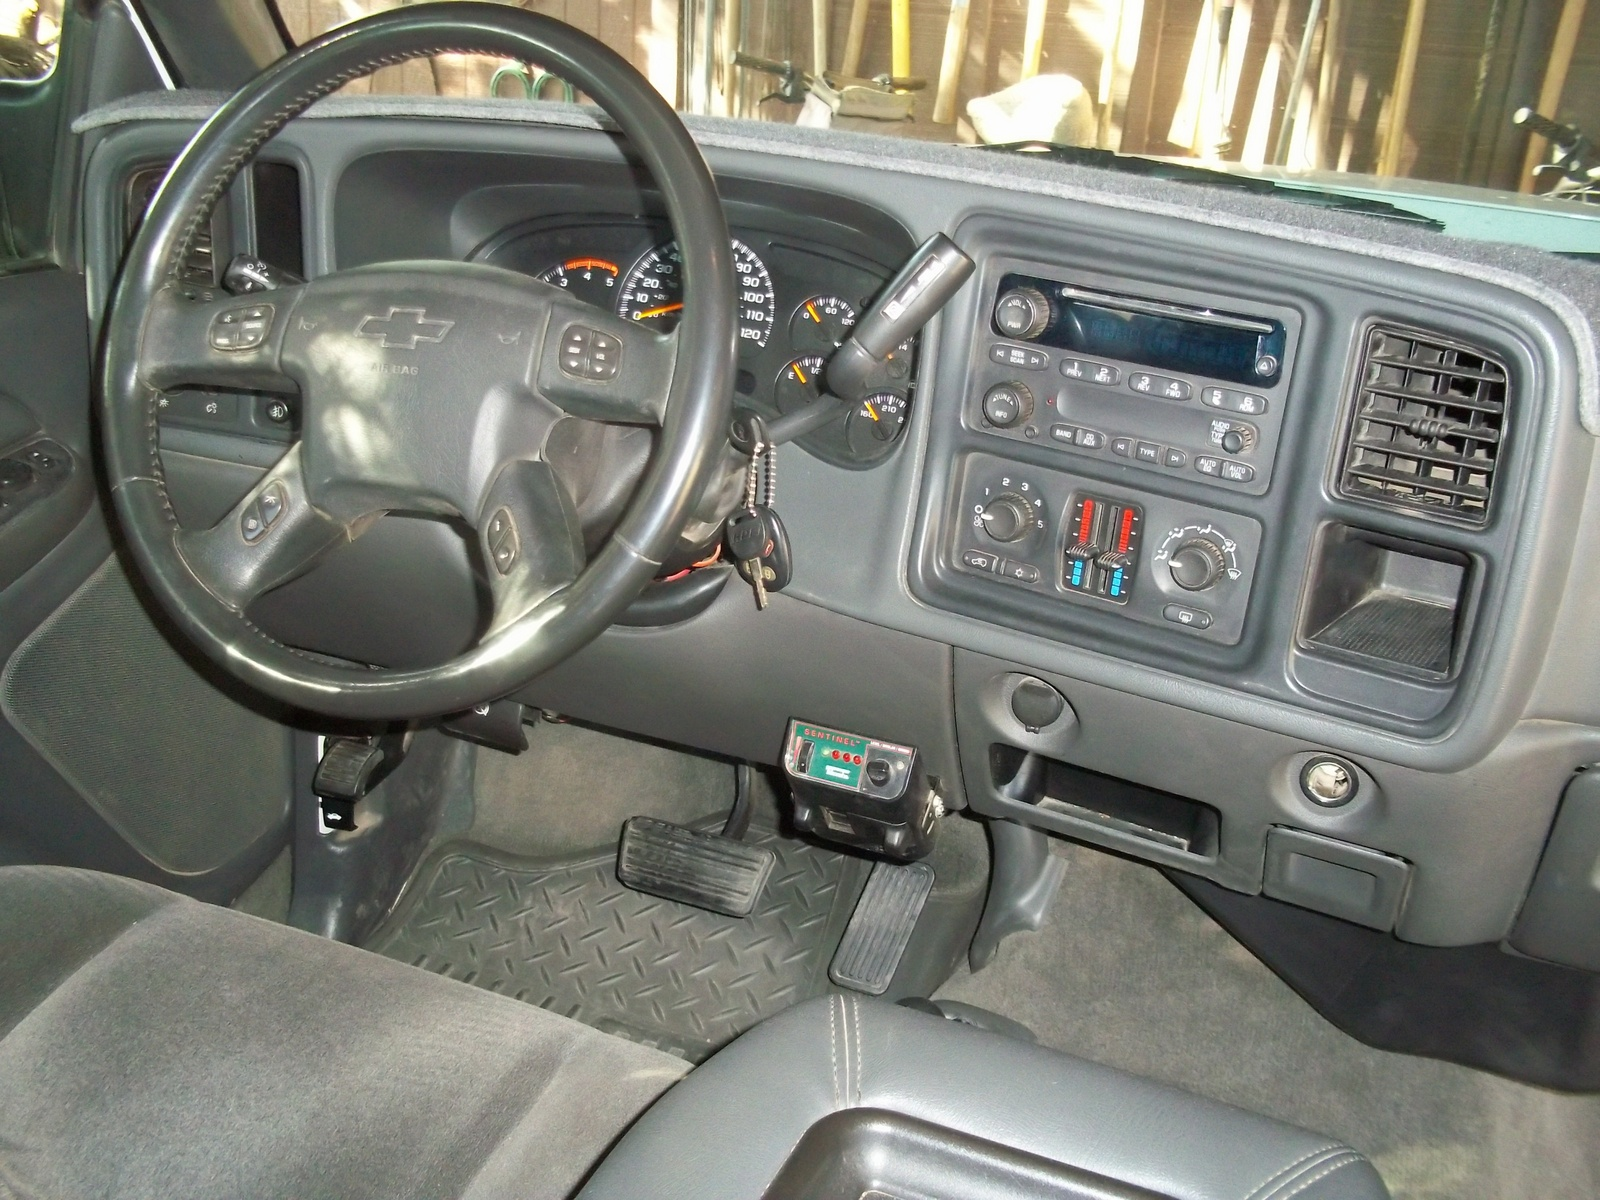 2002 Chevy Silverado 2500hd Interior Pictures To Pin On Pinterest Pinsdaddy